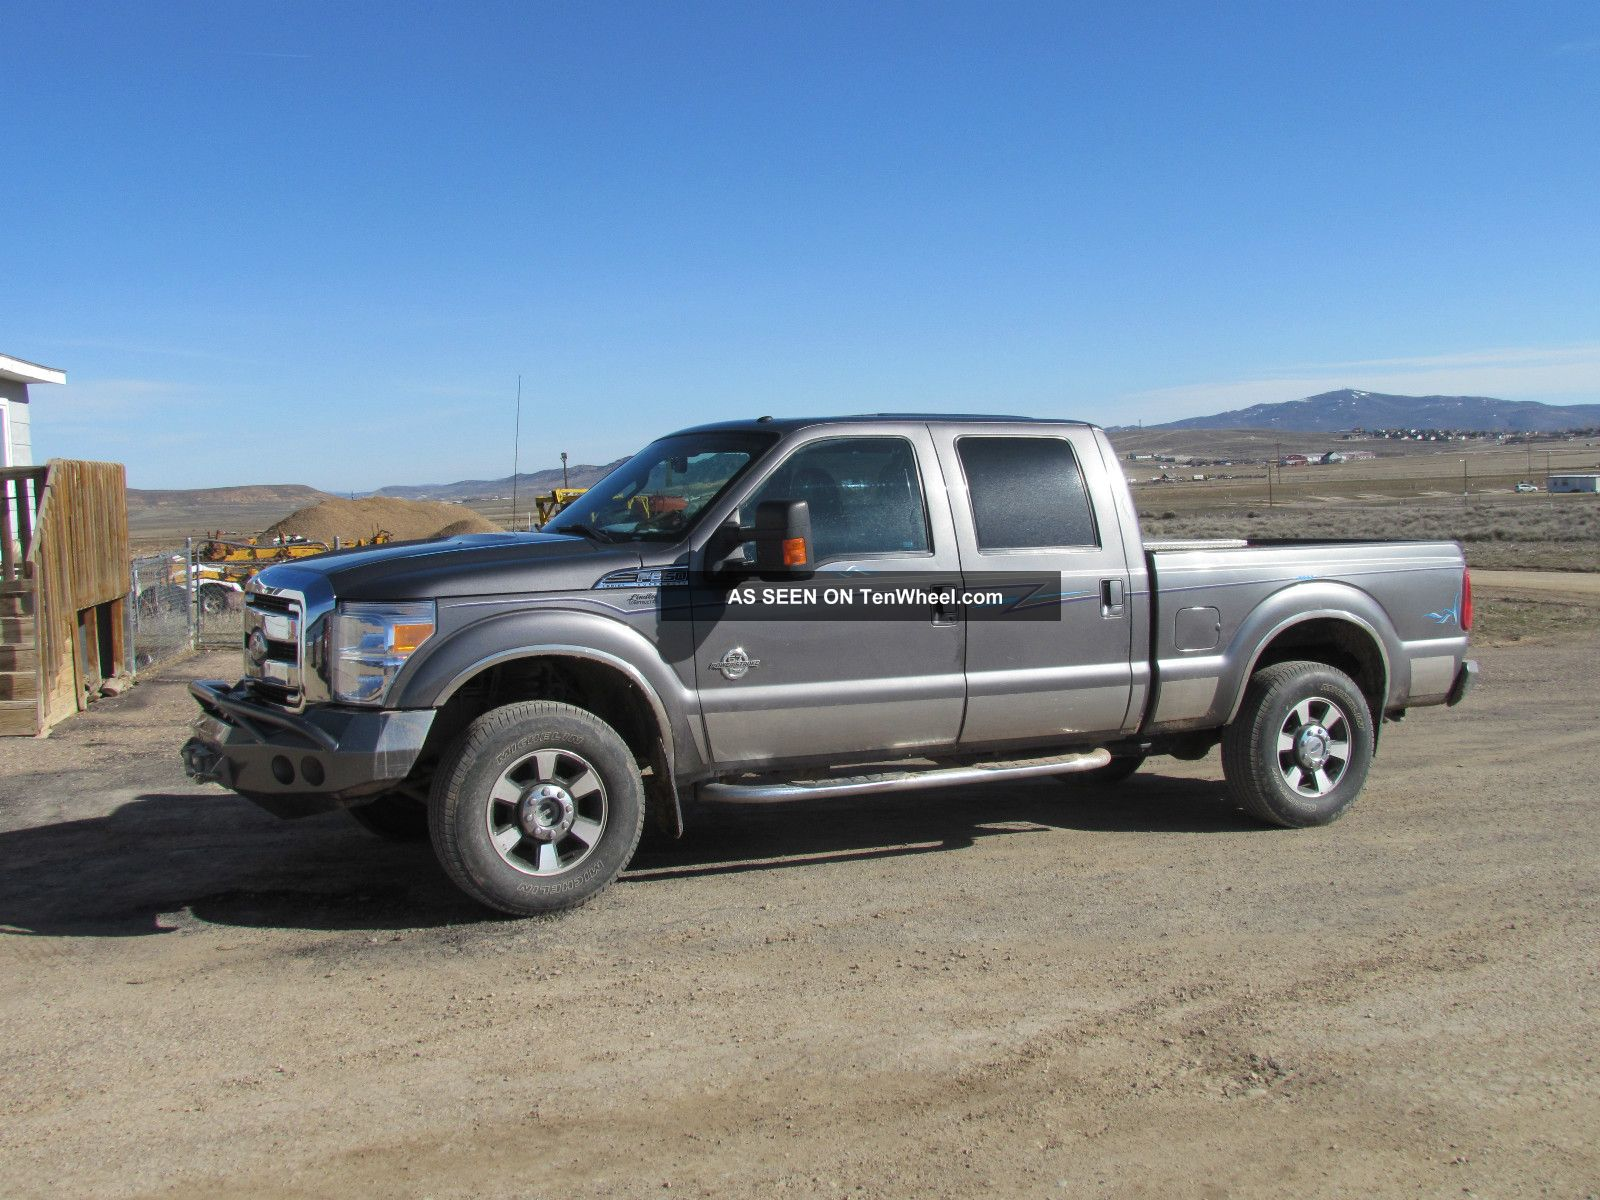 2011 Ford F350 Lrt,  Four Door,  Fully Loaded,  Top Of The Line,  Gray / Gray, F-350 photo